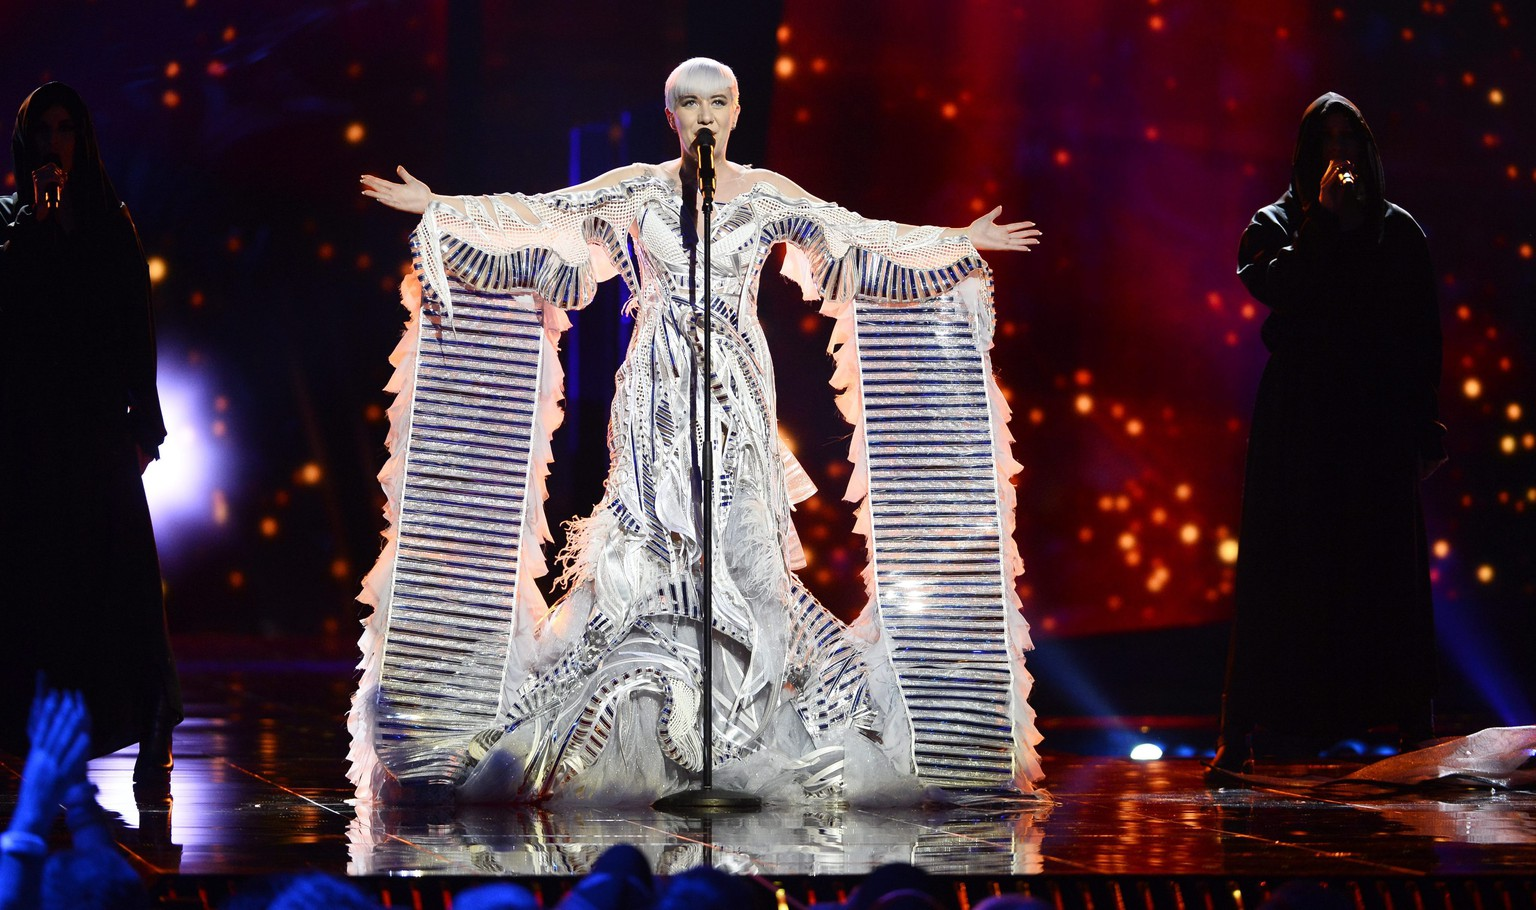 epa05296949 Croatia's Nina Kraljic performs the song 'Lighthouse' during rehearsals for the First Semi-Final of the 61st annual Eurovision Song Contest (ESC) at the Ericsson Globe arena in Stockholm, Sweden, 09 May 2016. The event's grand final takes place on 14 May.  EPA/MAJA SUSLIN SWEDEN OUT